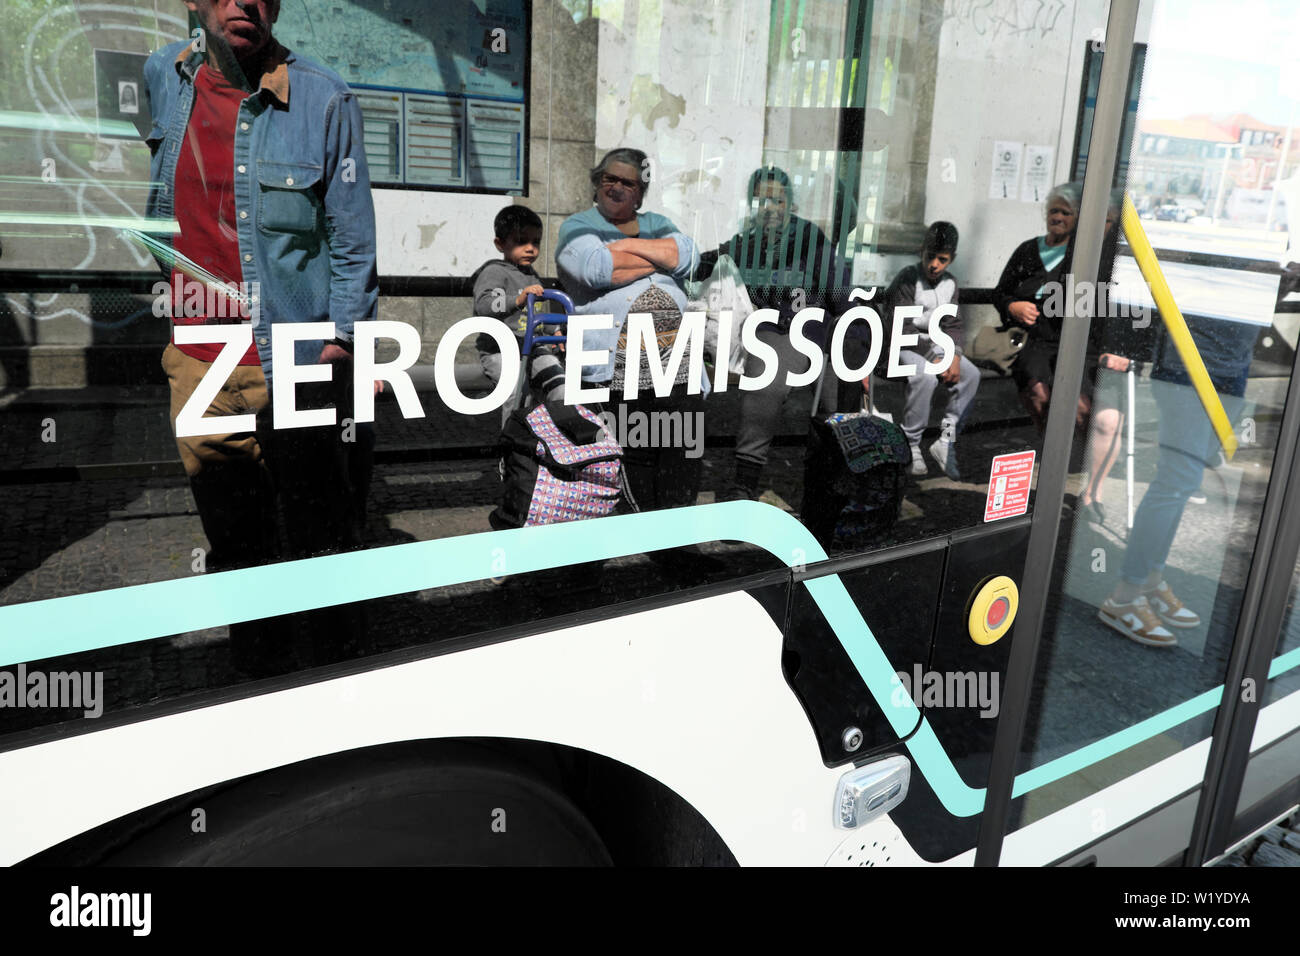 Zero emissions emissoes 100% electric eletrico sign on the side of a bus in the city of Porto Oporto Portugal Europe  KATHY DEWITT Stock Photo